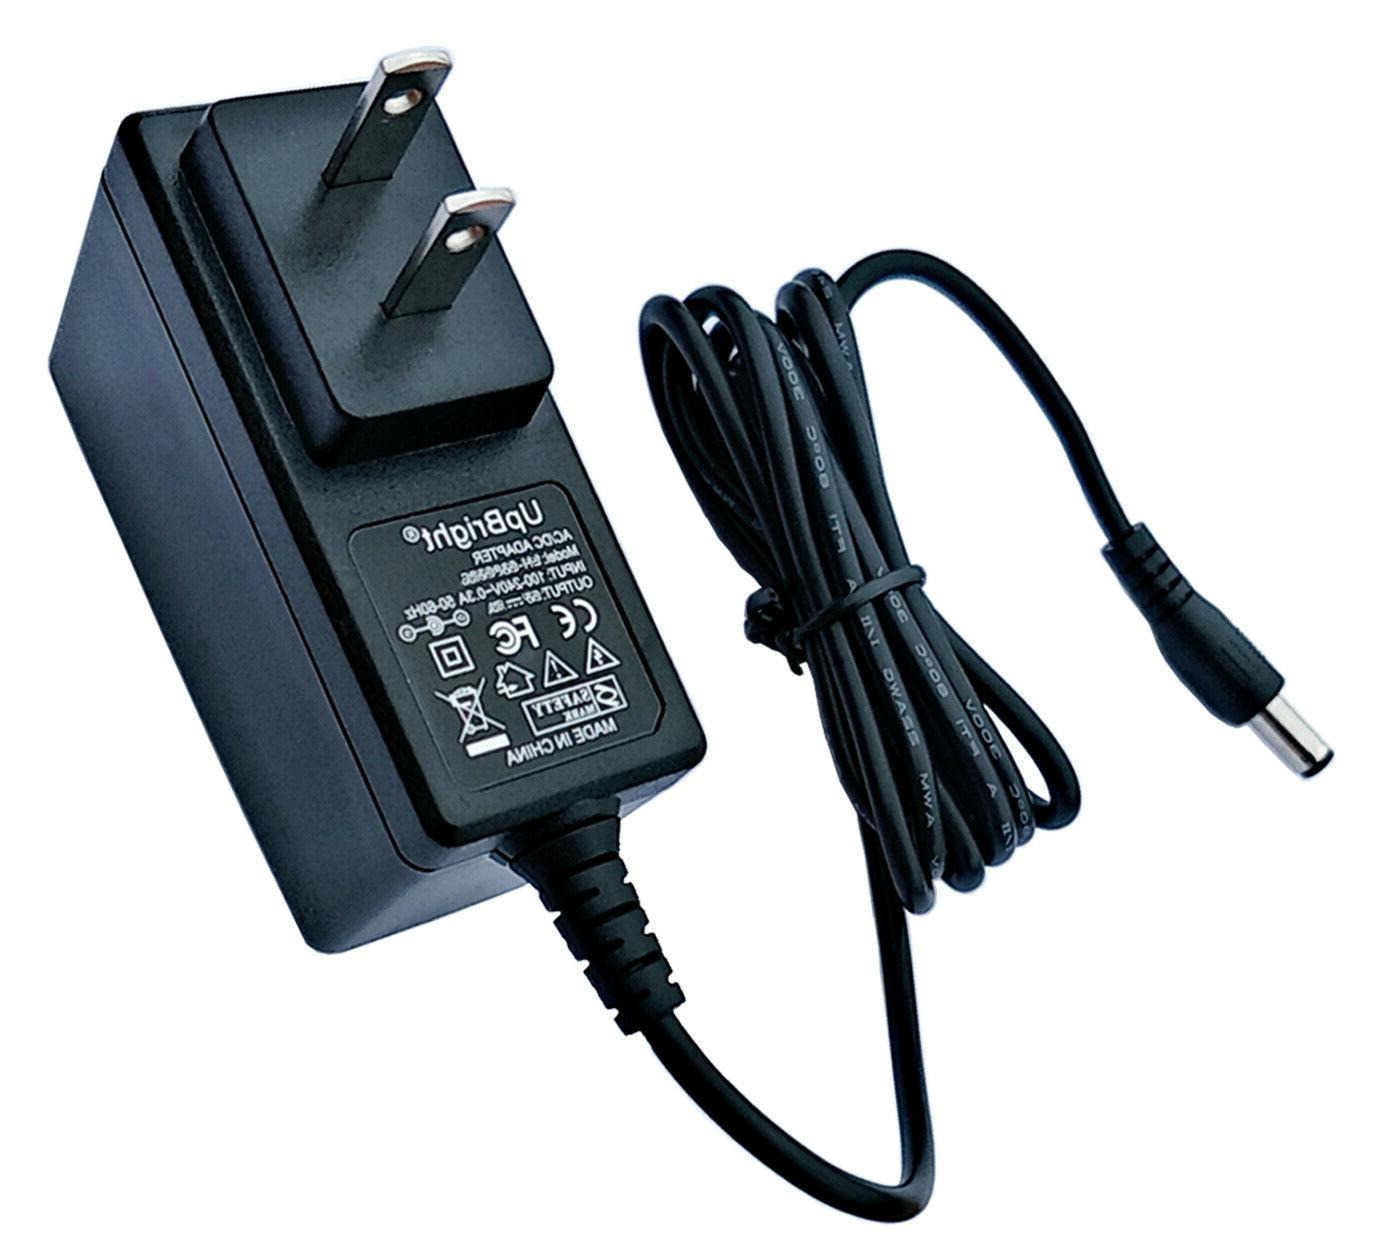 AC Adapter Cricket 300 670 750 Electronic